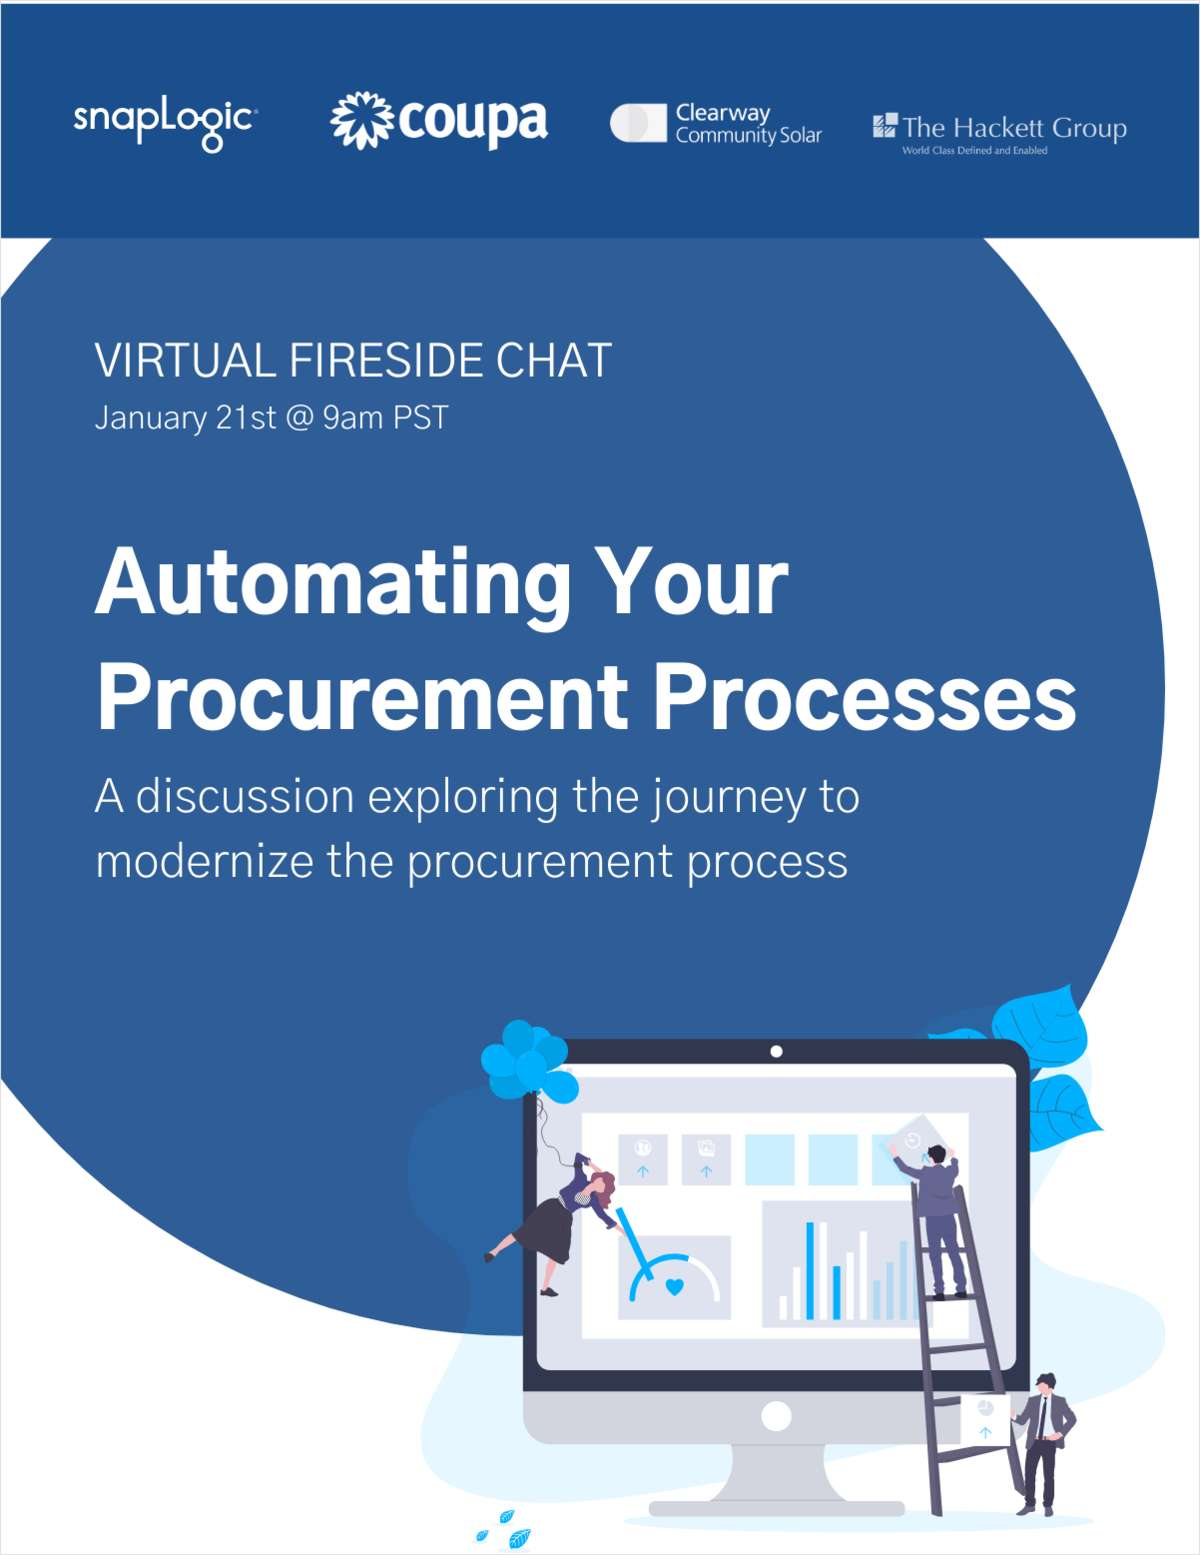 Automating Your Procurement Processes [Virtual Fireside Chat]